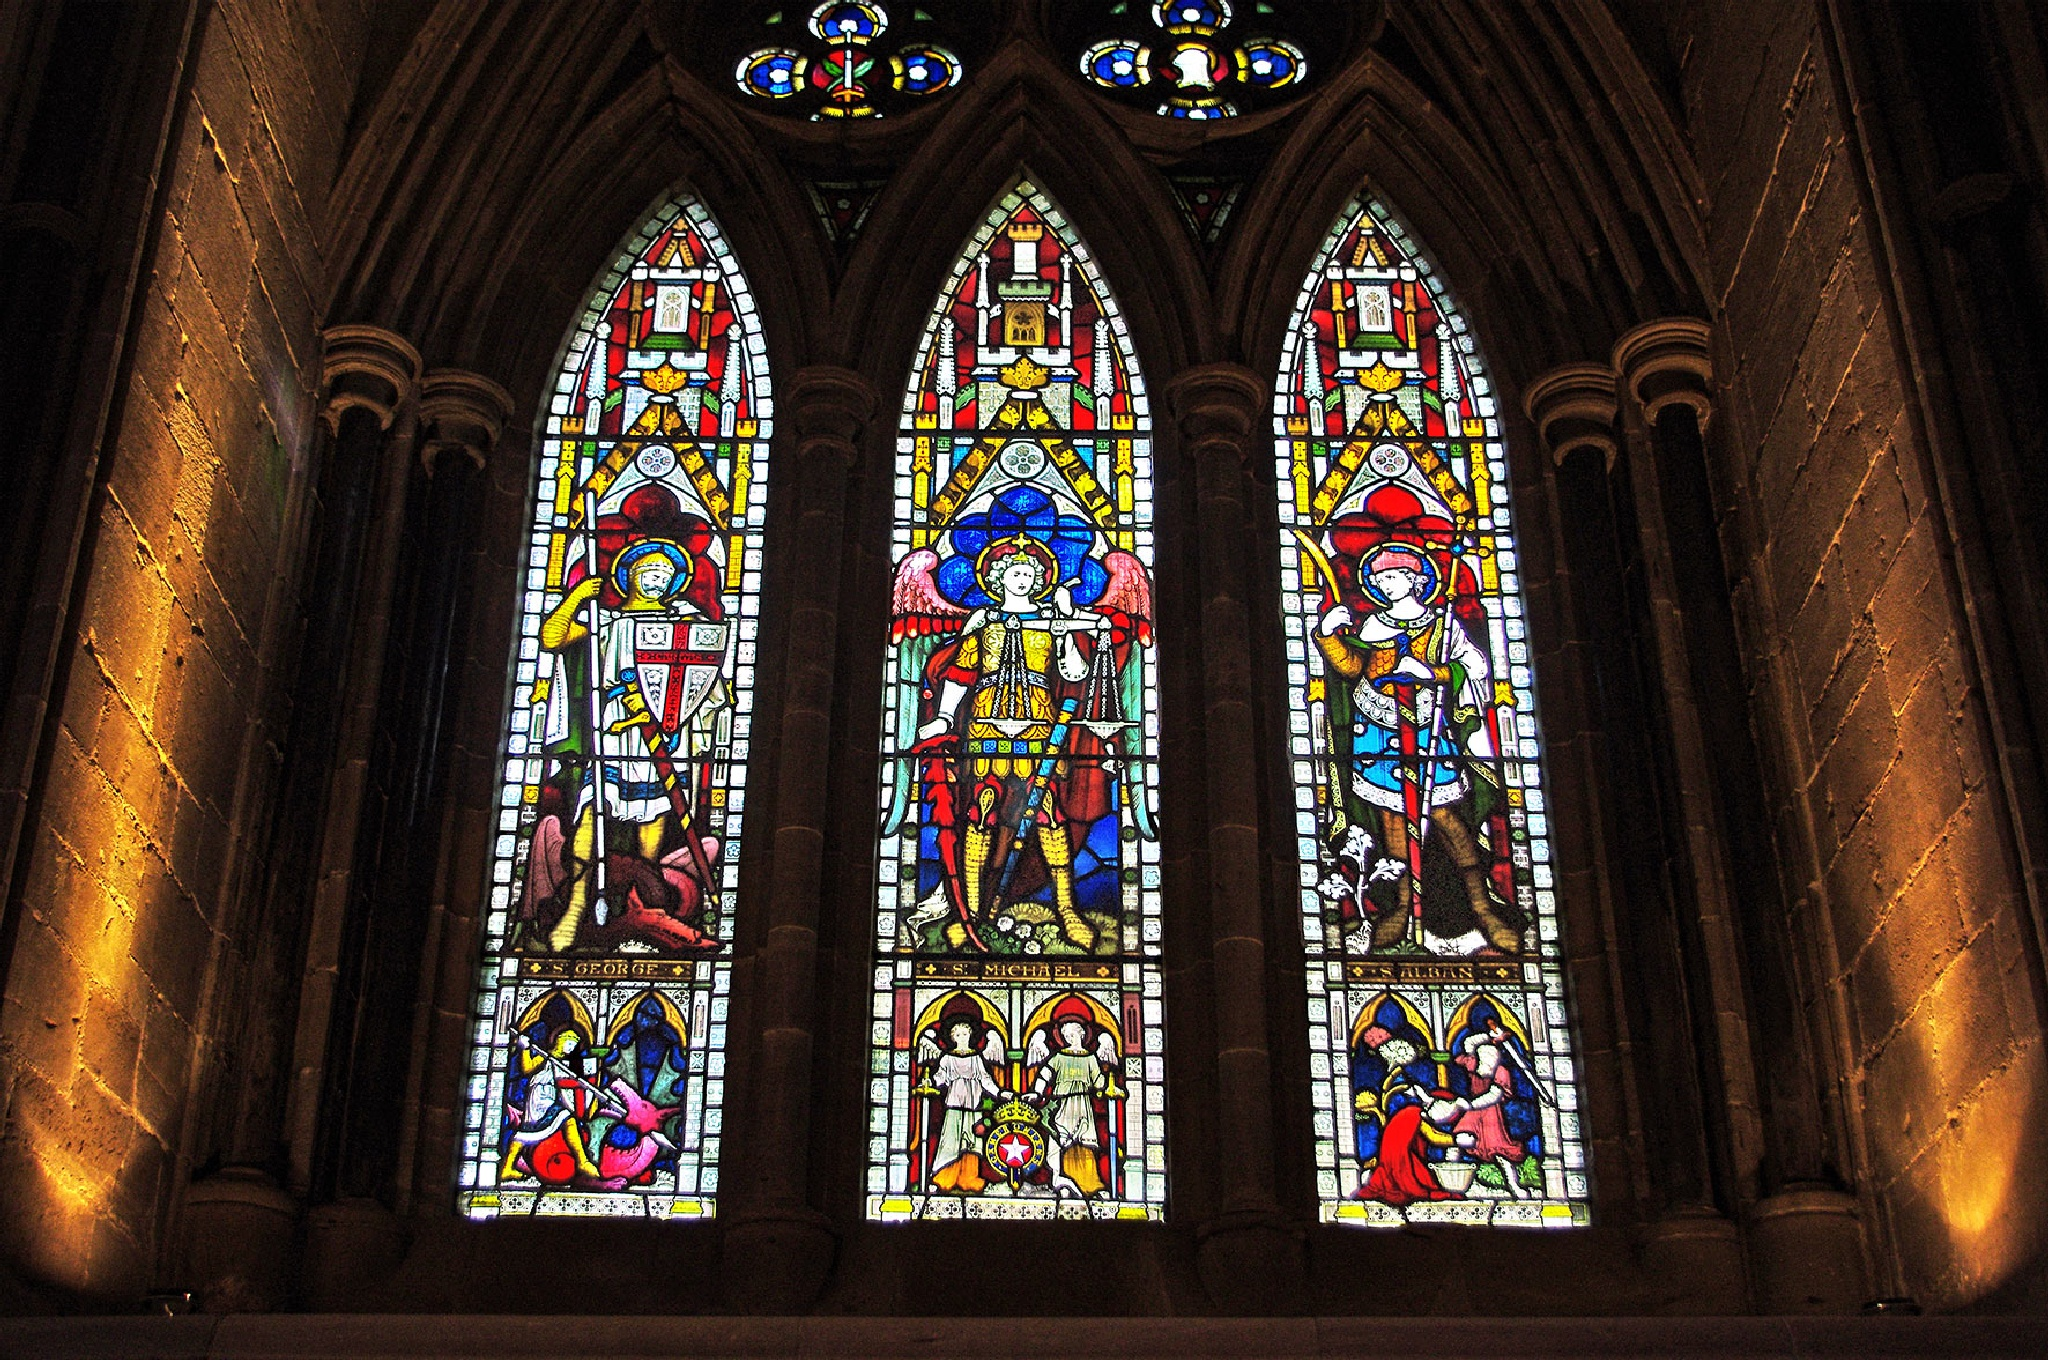 stained glass windows of the cathedral in Hereford, England by Tomasz Marciniak